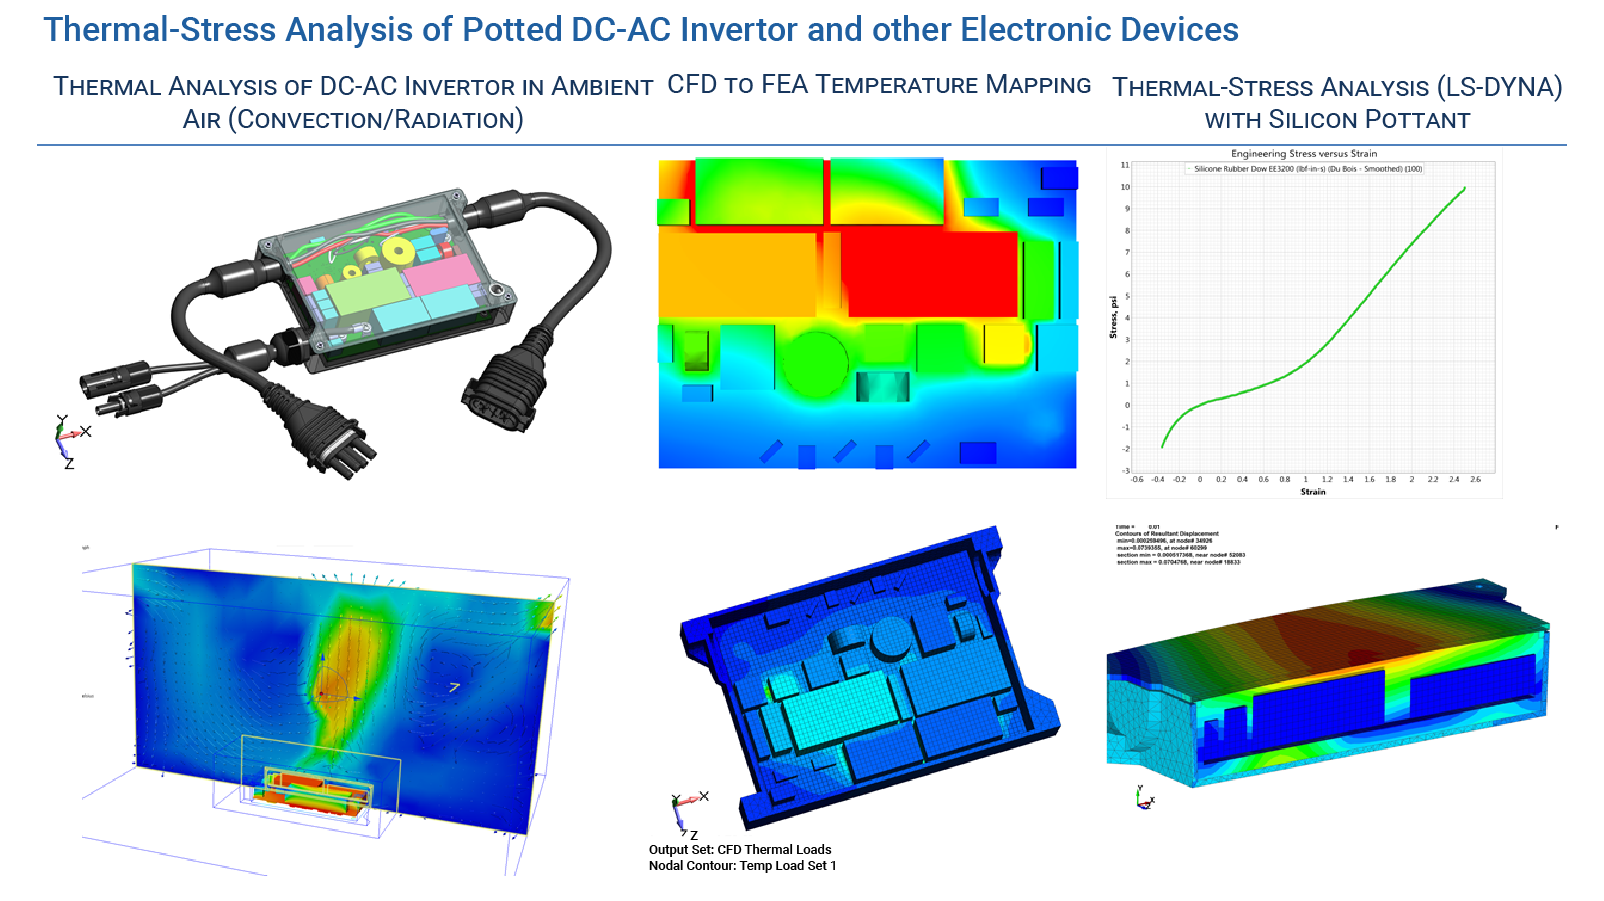 Thermal-Stress Analysis of Potted DC-AC Invertor and other Electronic Devices